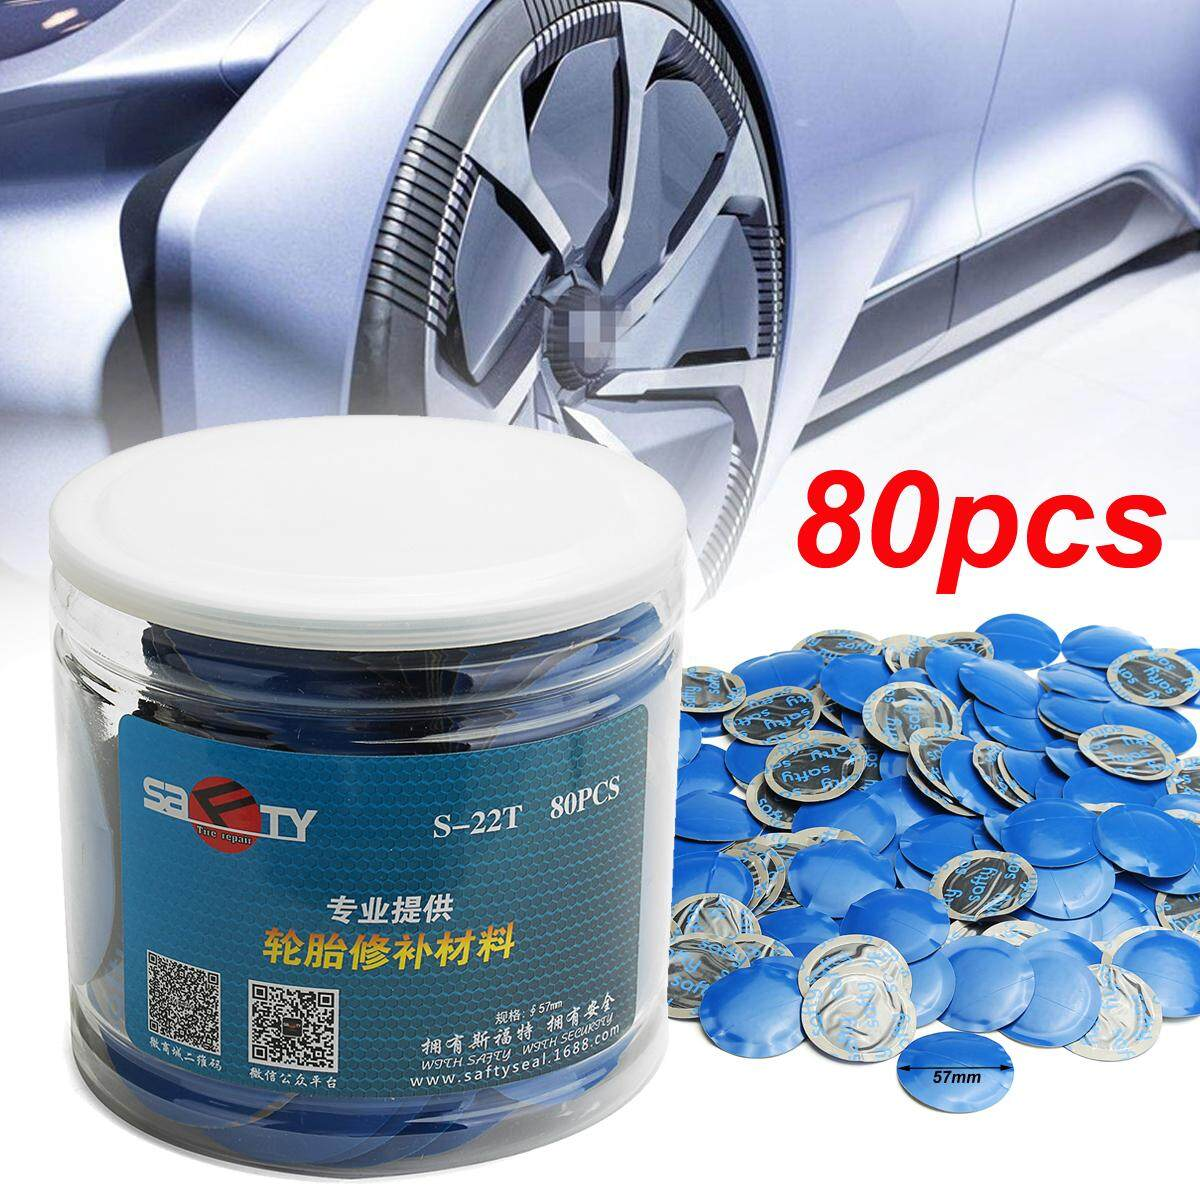 Universal 80pcs 57mm Natural Rubber Wired Tyre Puncture Repair Mushroom Patch By Teamtop.